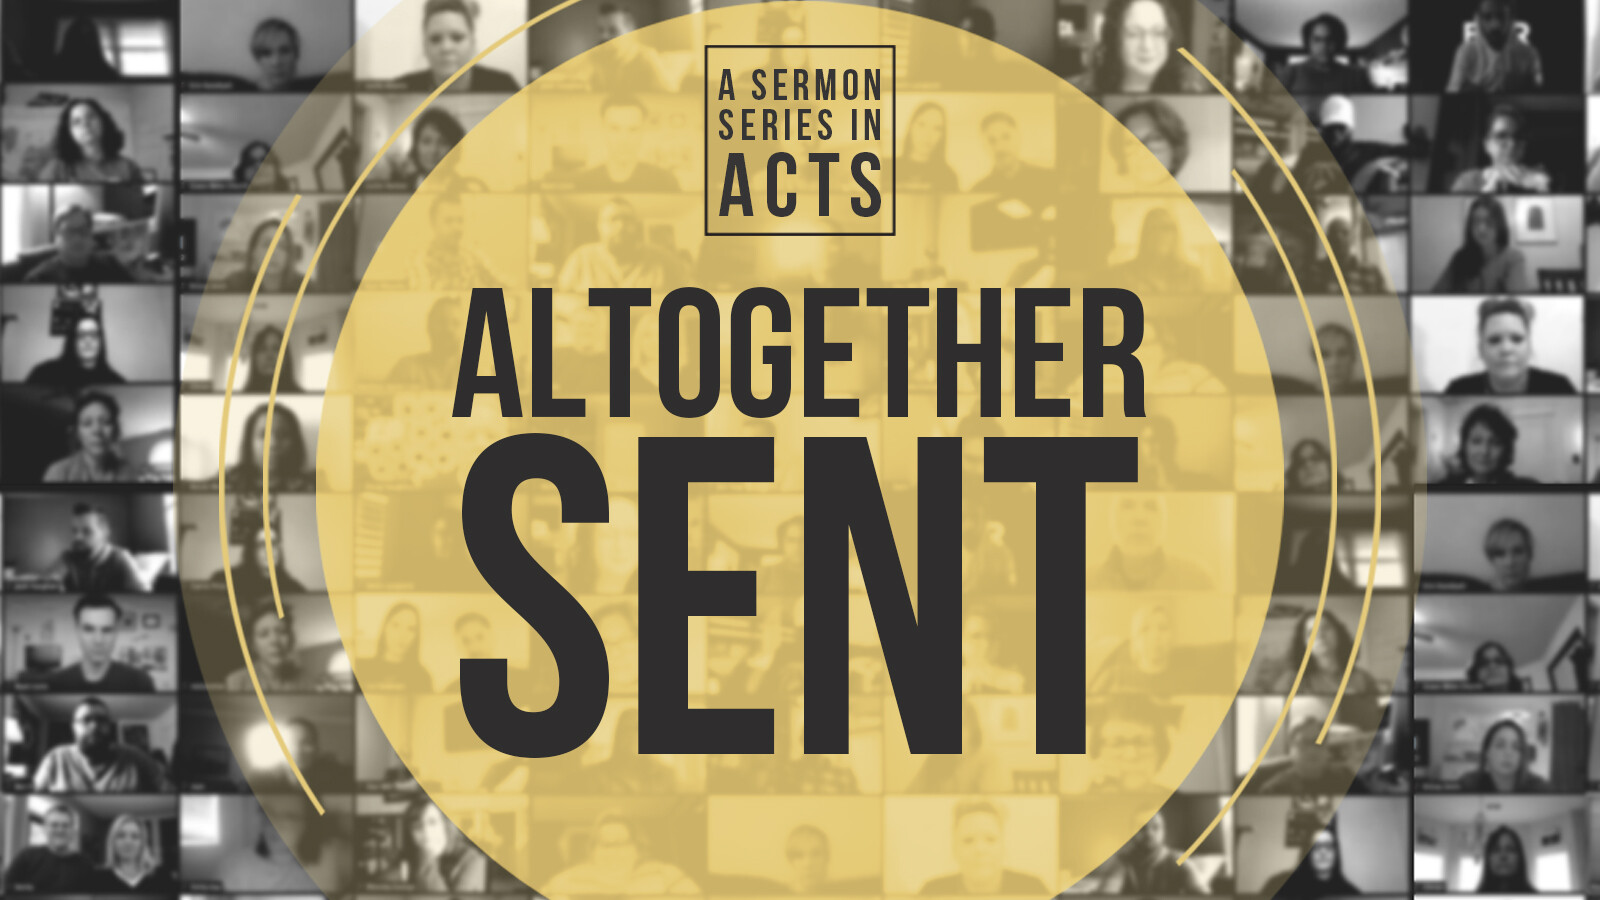 Altogether Sent | Acts